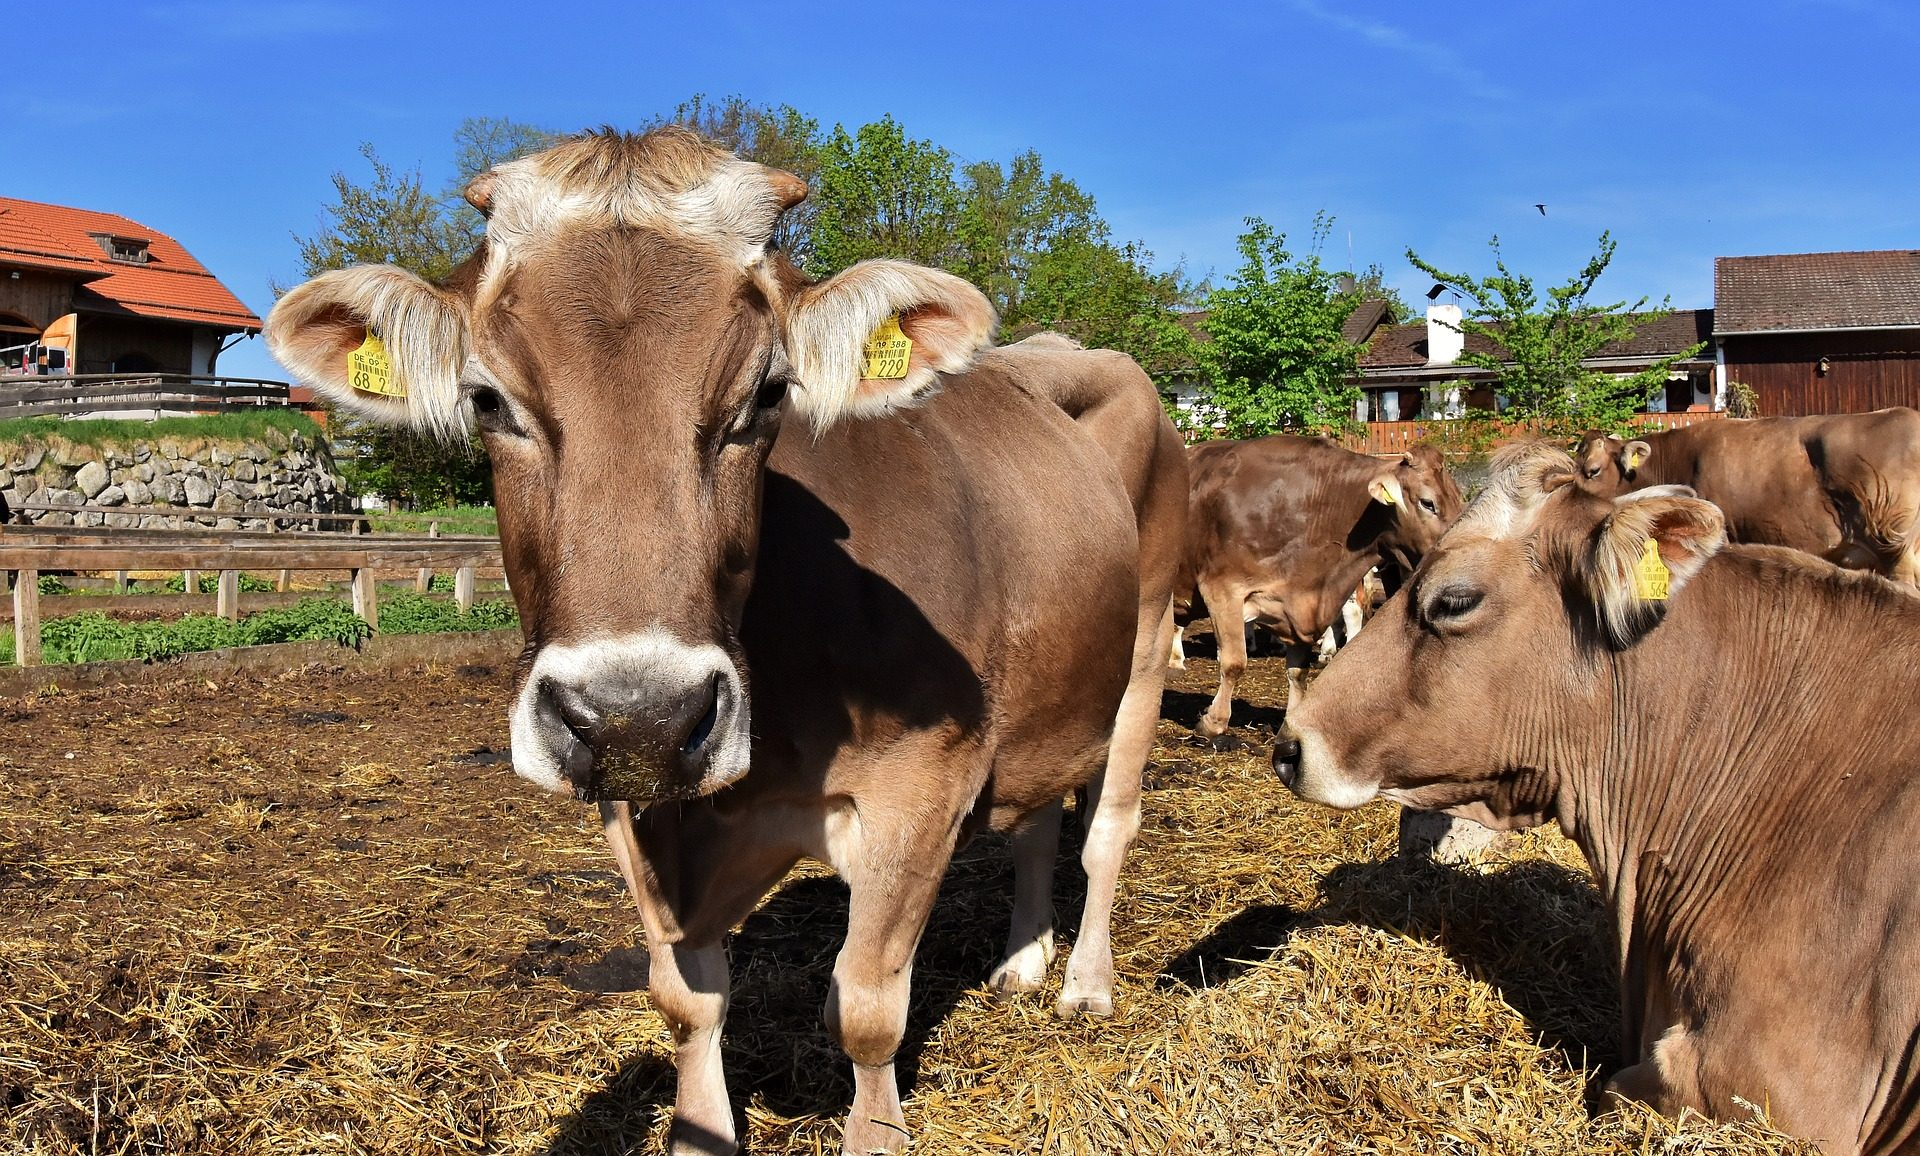 Scientist's given $200,000 to study cow farts… Seriously